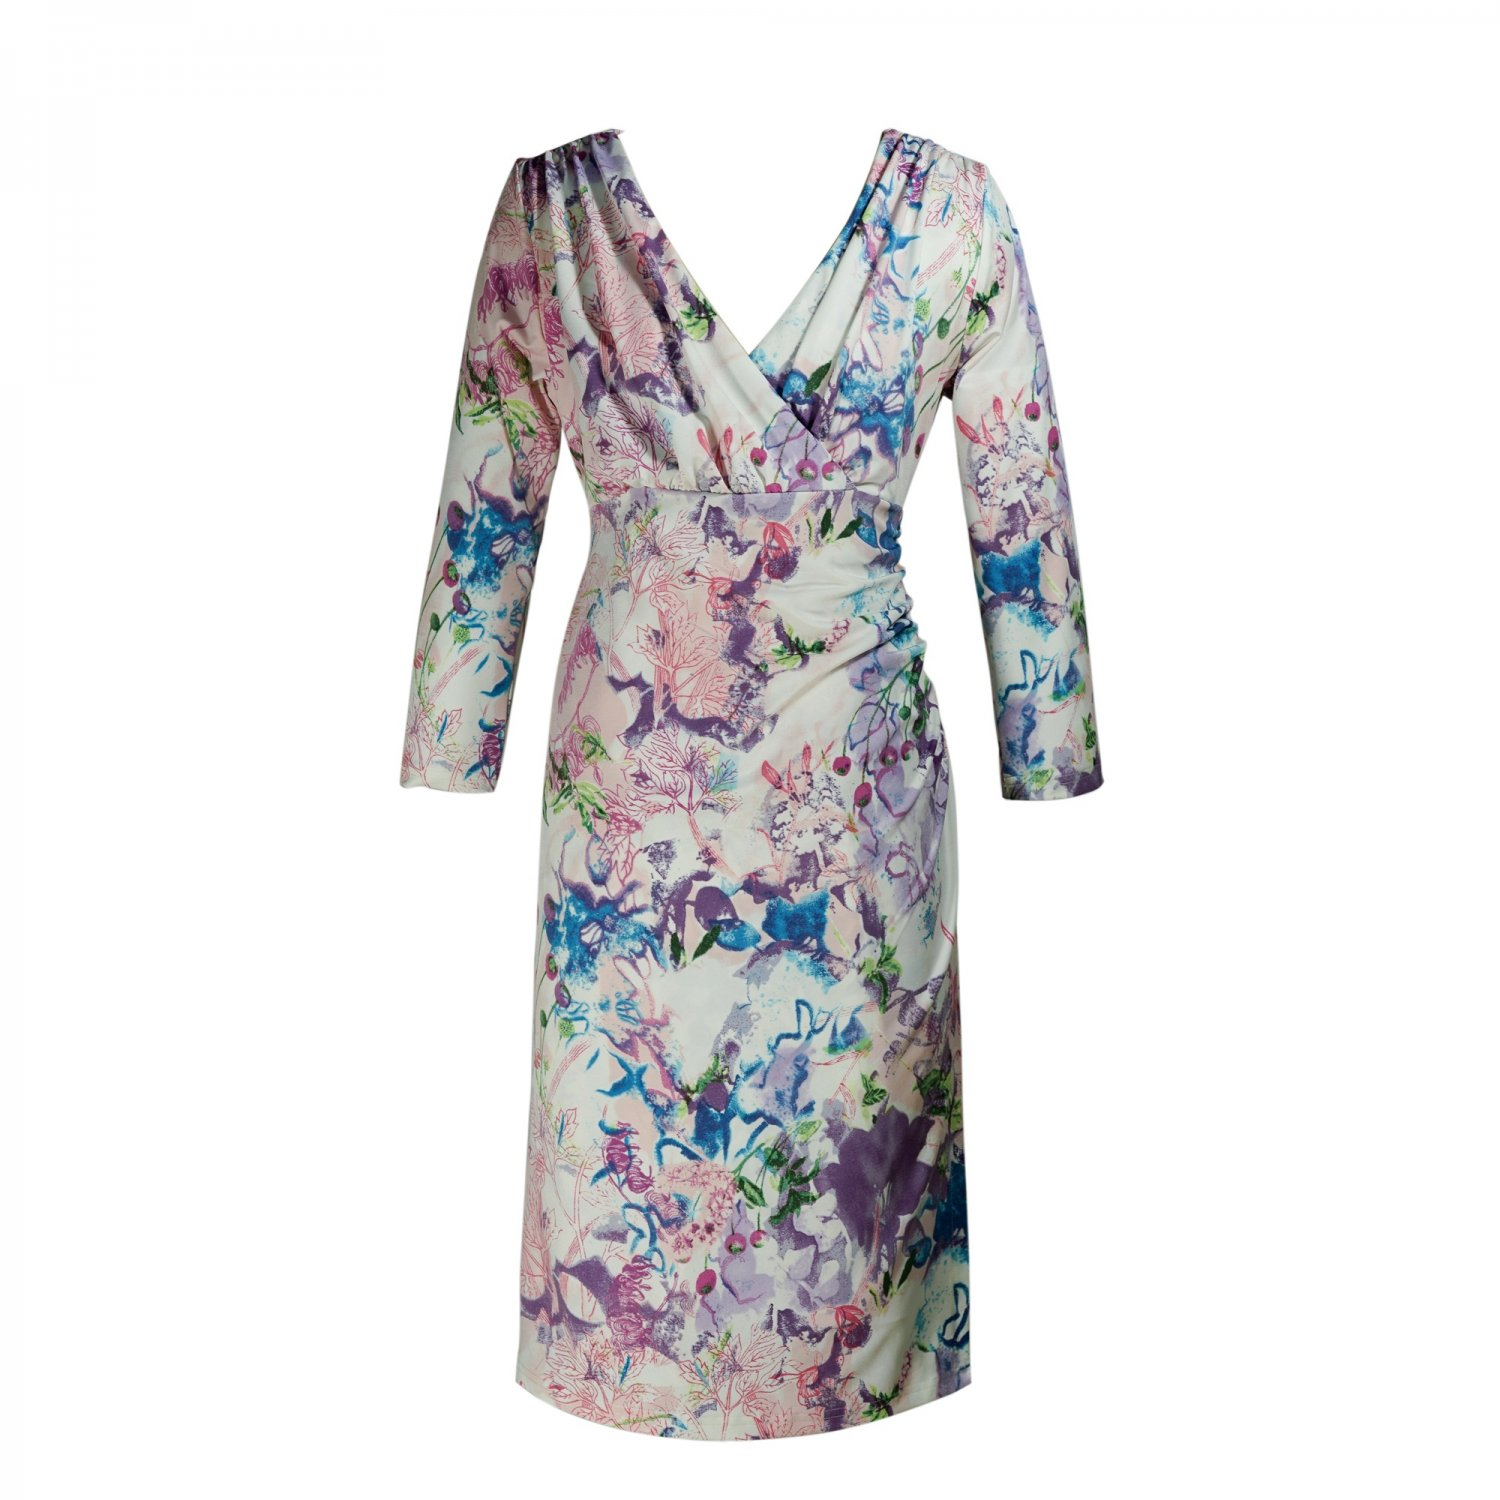 2 FOR 1 CLOTHES 3/4 Sleeve Printed Jersey Faux Wrap Dress,XS,S,M,L